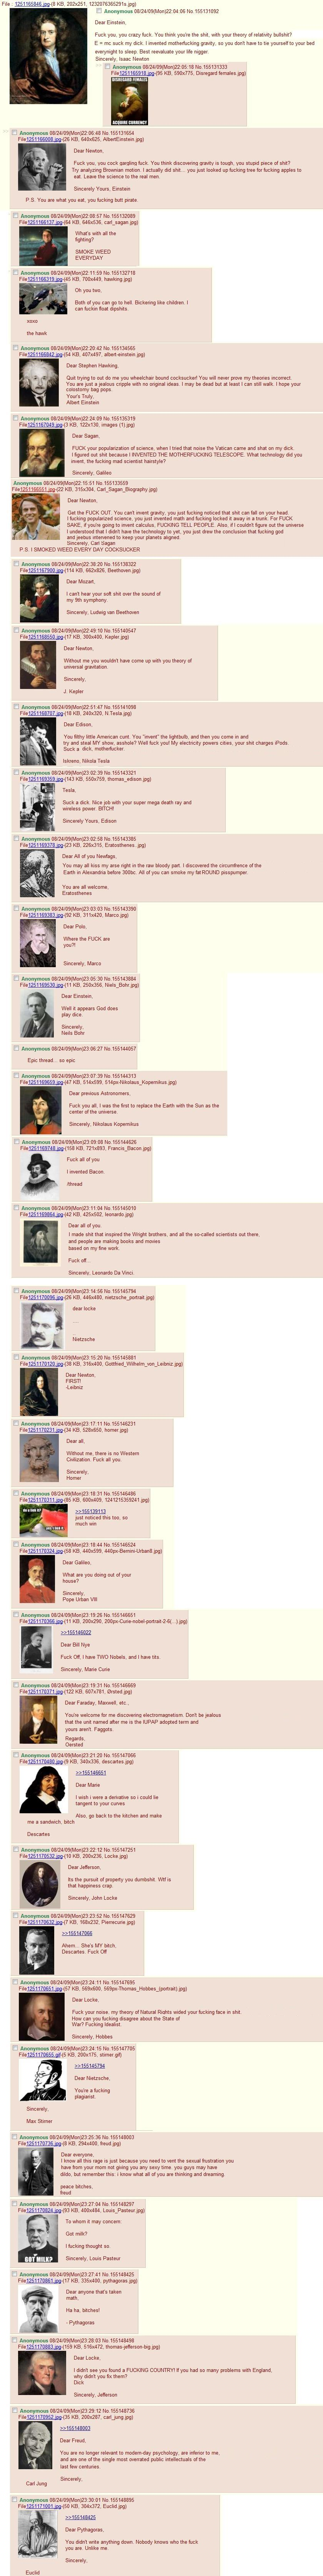 4 chan science